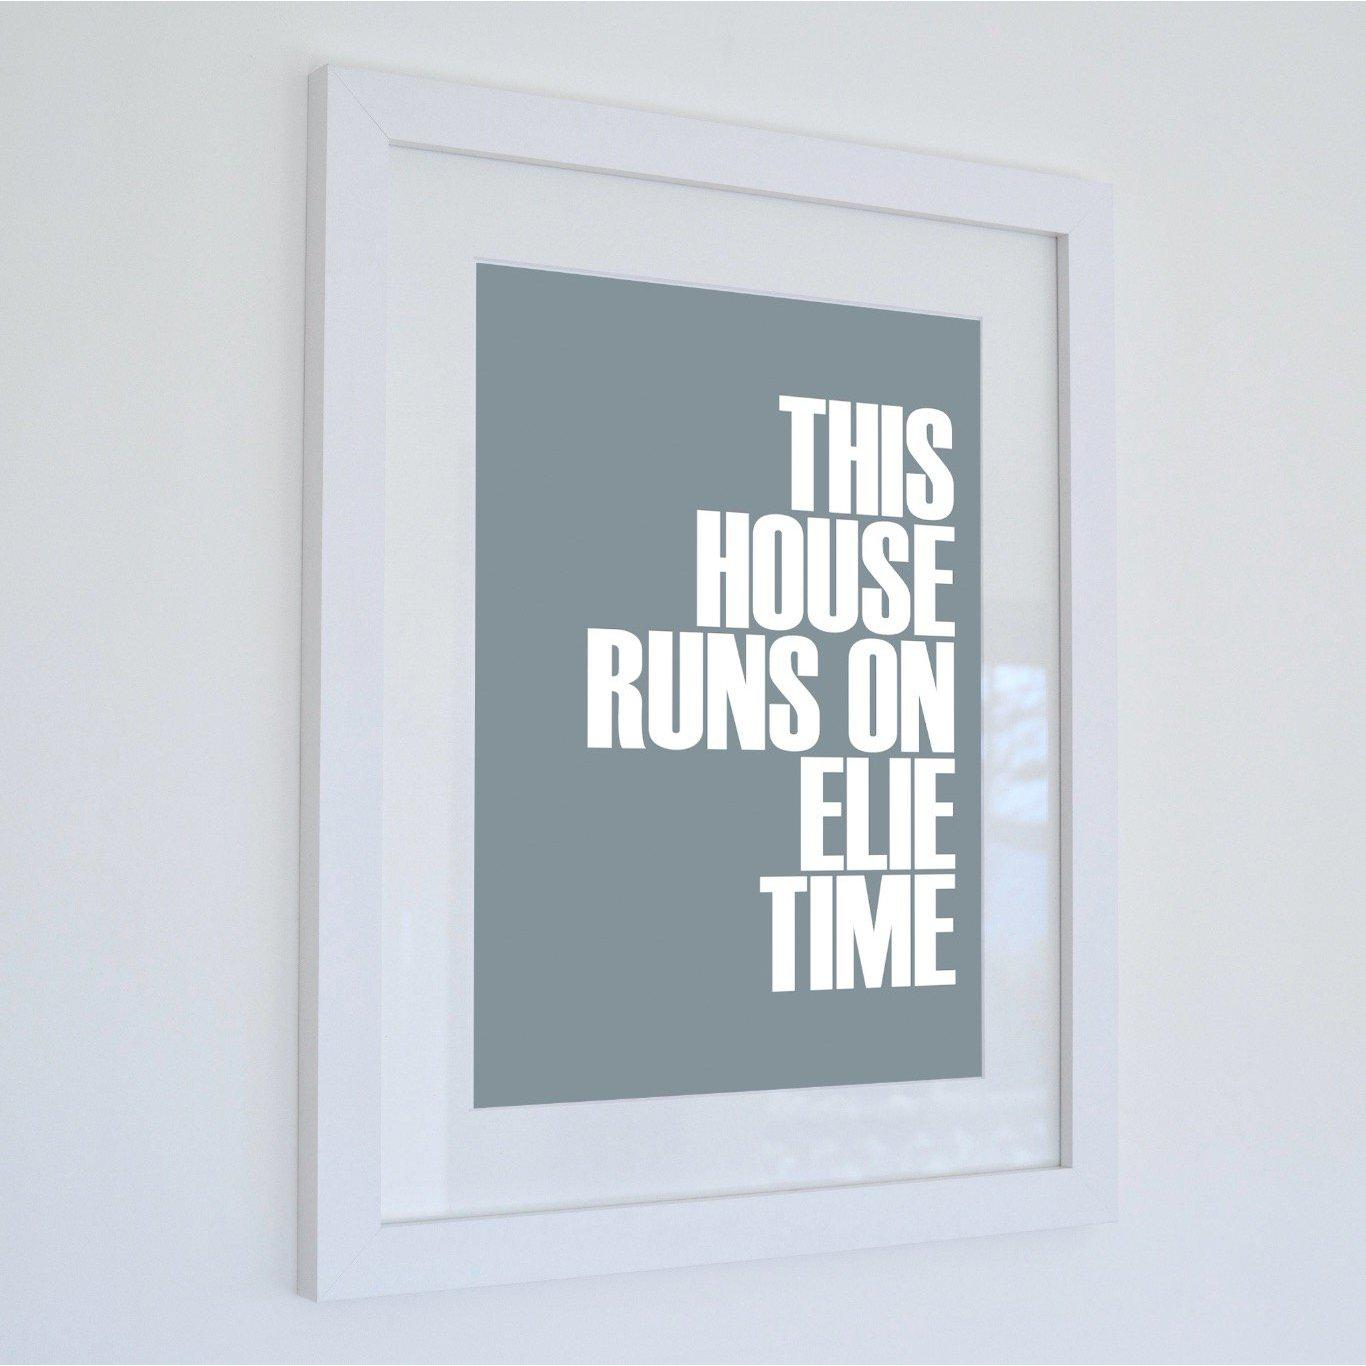 Elie Time Typographic Travel Print - Coastal Wall Art /Poster-SeaKisses